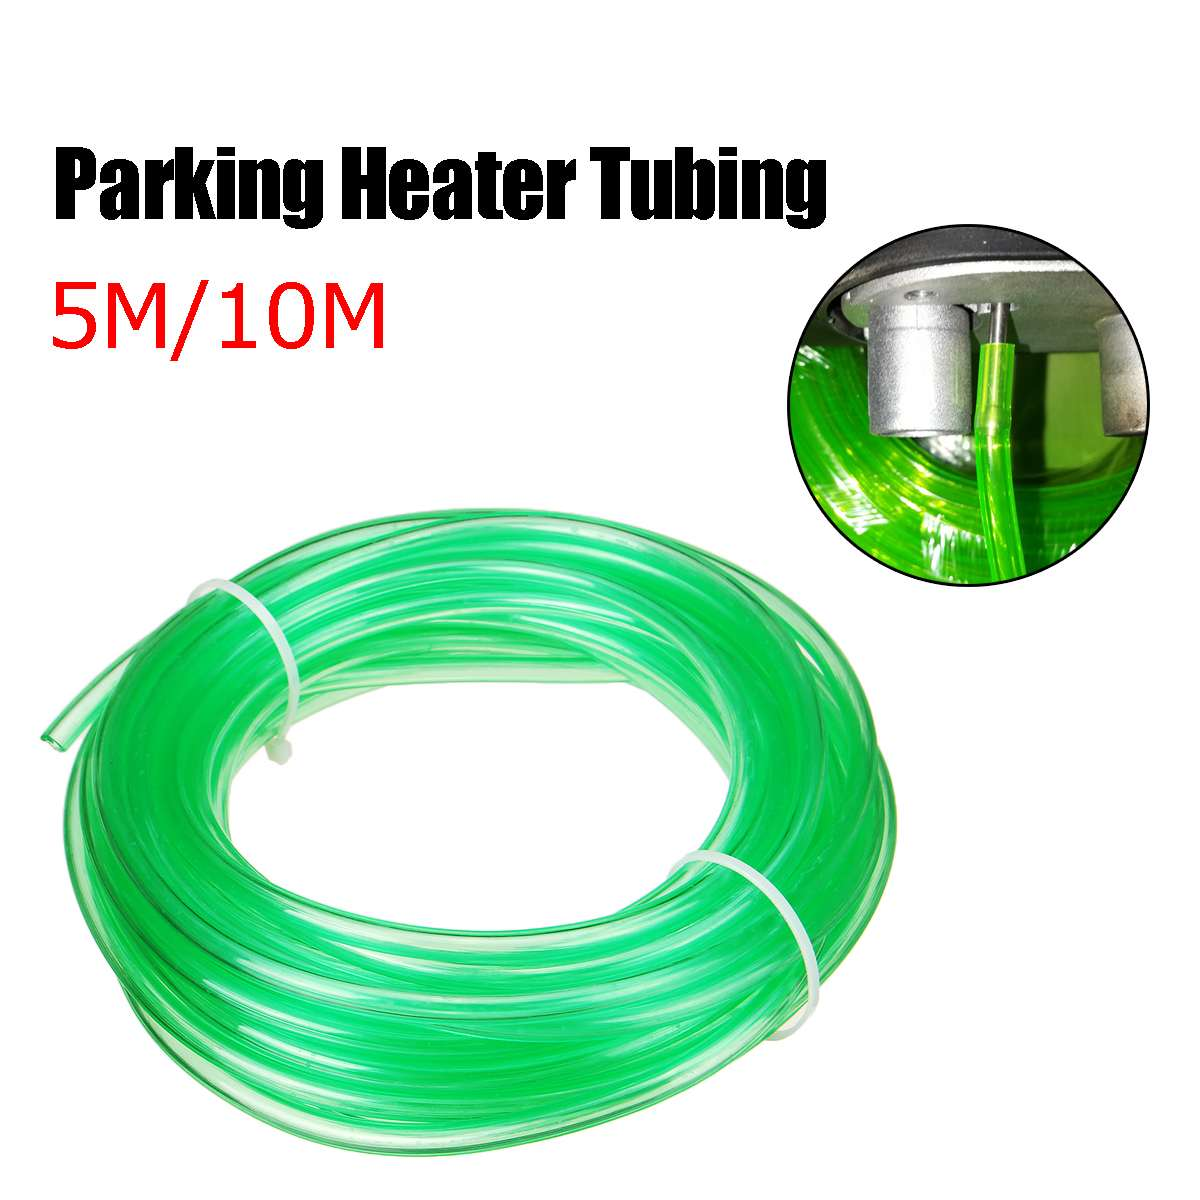 5M / 10M Car Heater Fuel Pipe Hose Line Green For Oil Pump Dedicated Tubing For Eberspacher For Diesel Air Parking Heater